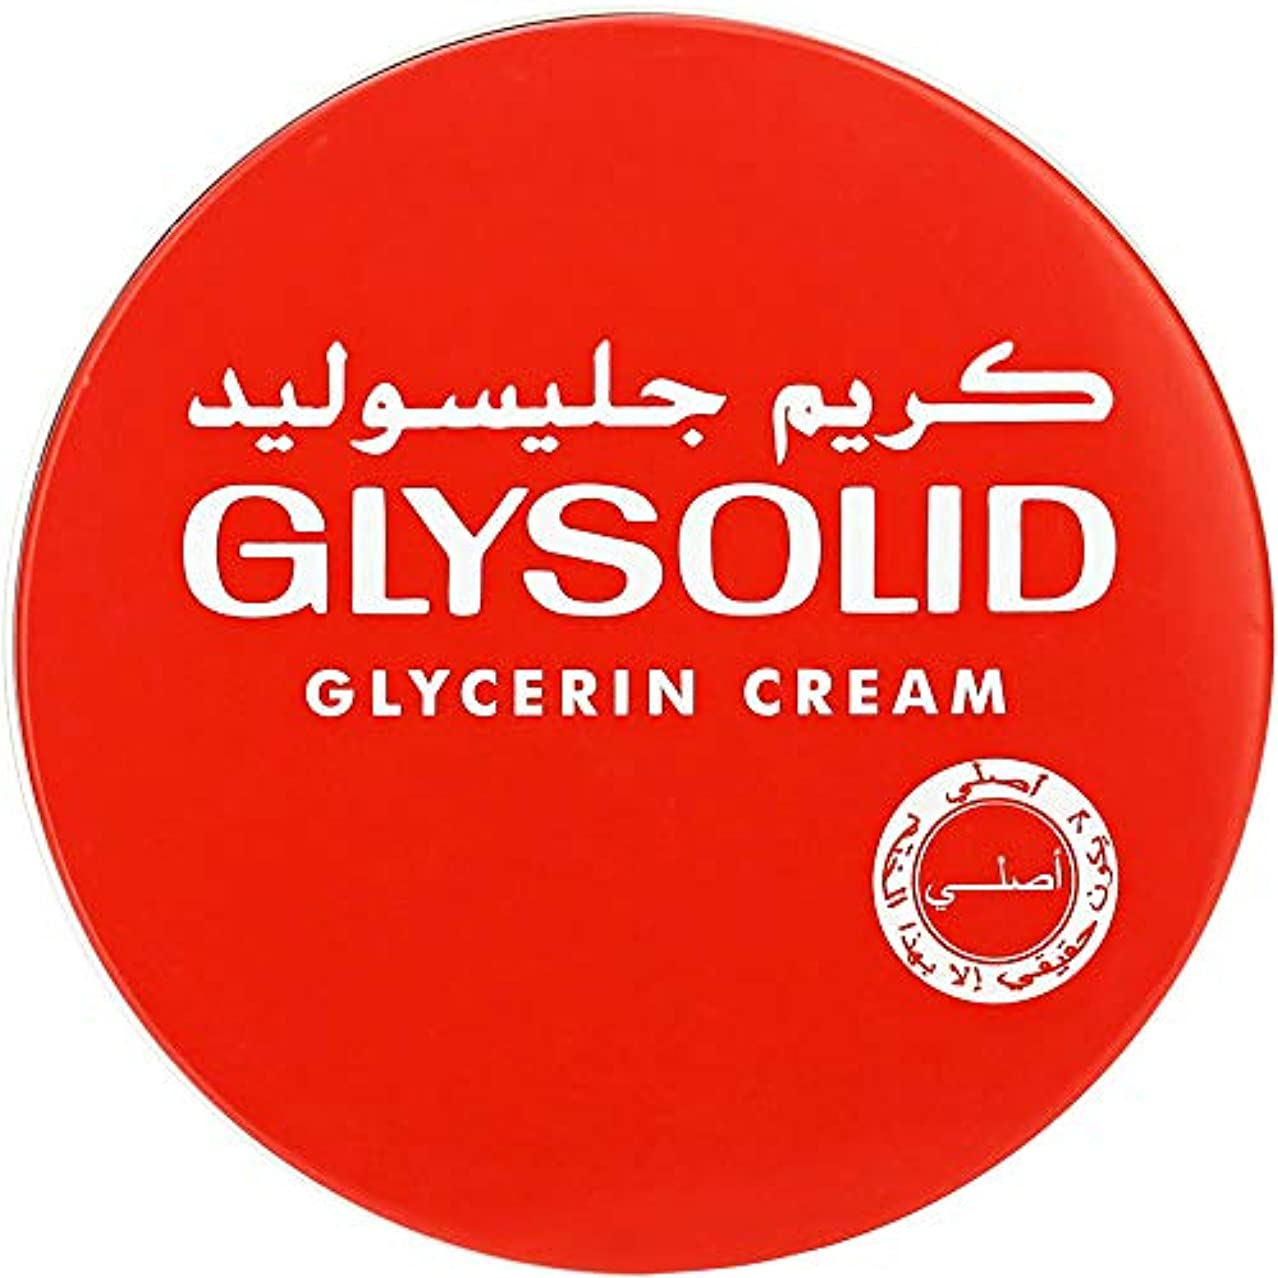 毎年警告する日付付きGlysolid Cream Face Moisturizers For Dry Skin Hands Feet Elbow Body Softening With Glycerin Keeping Your Skin...